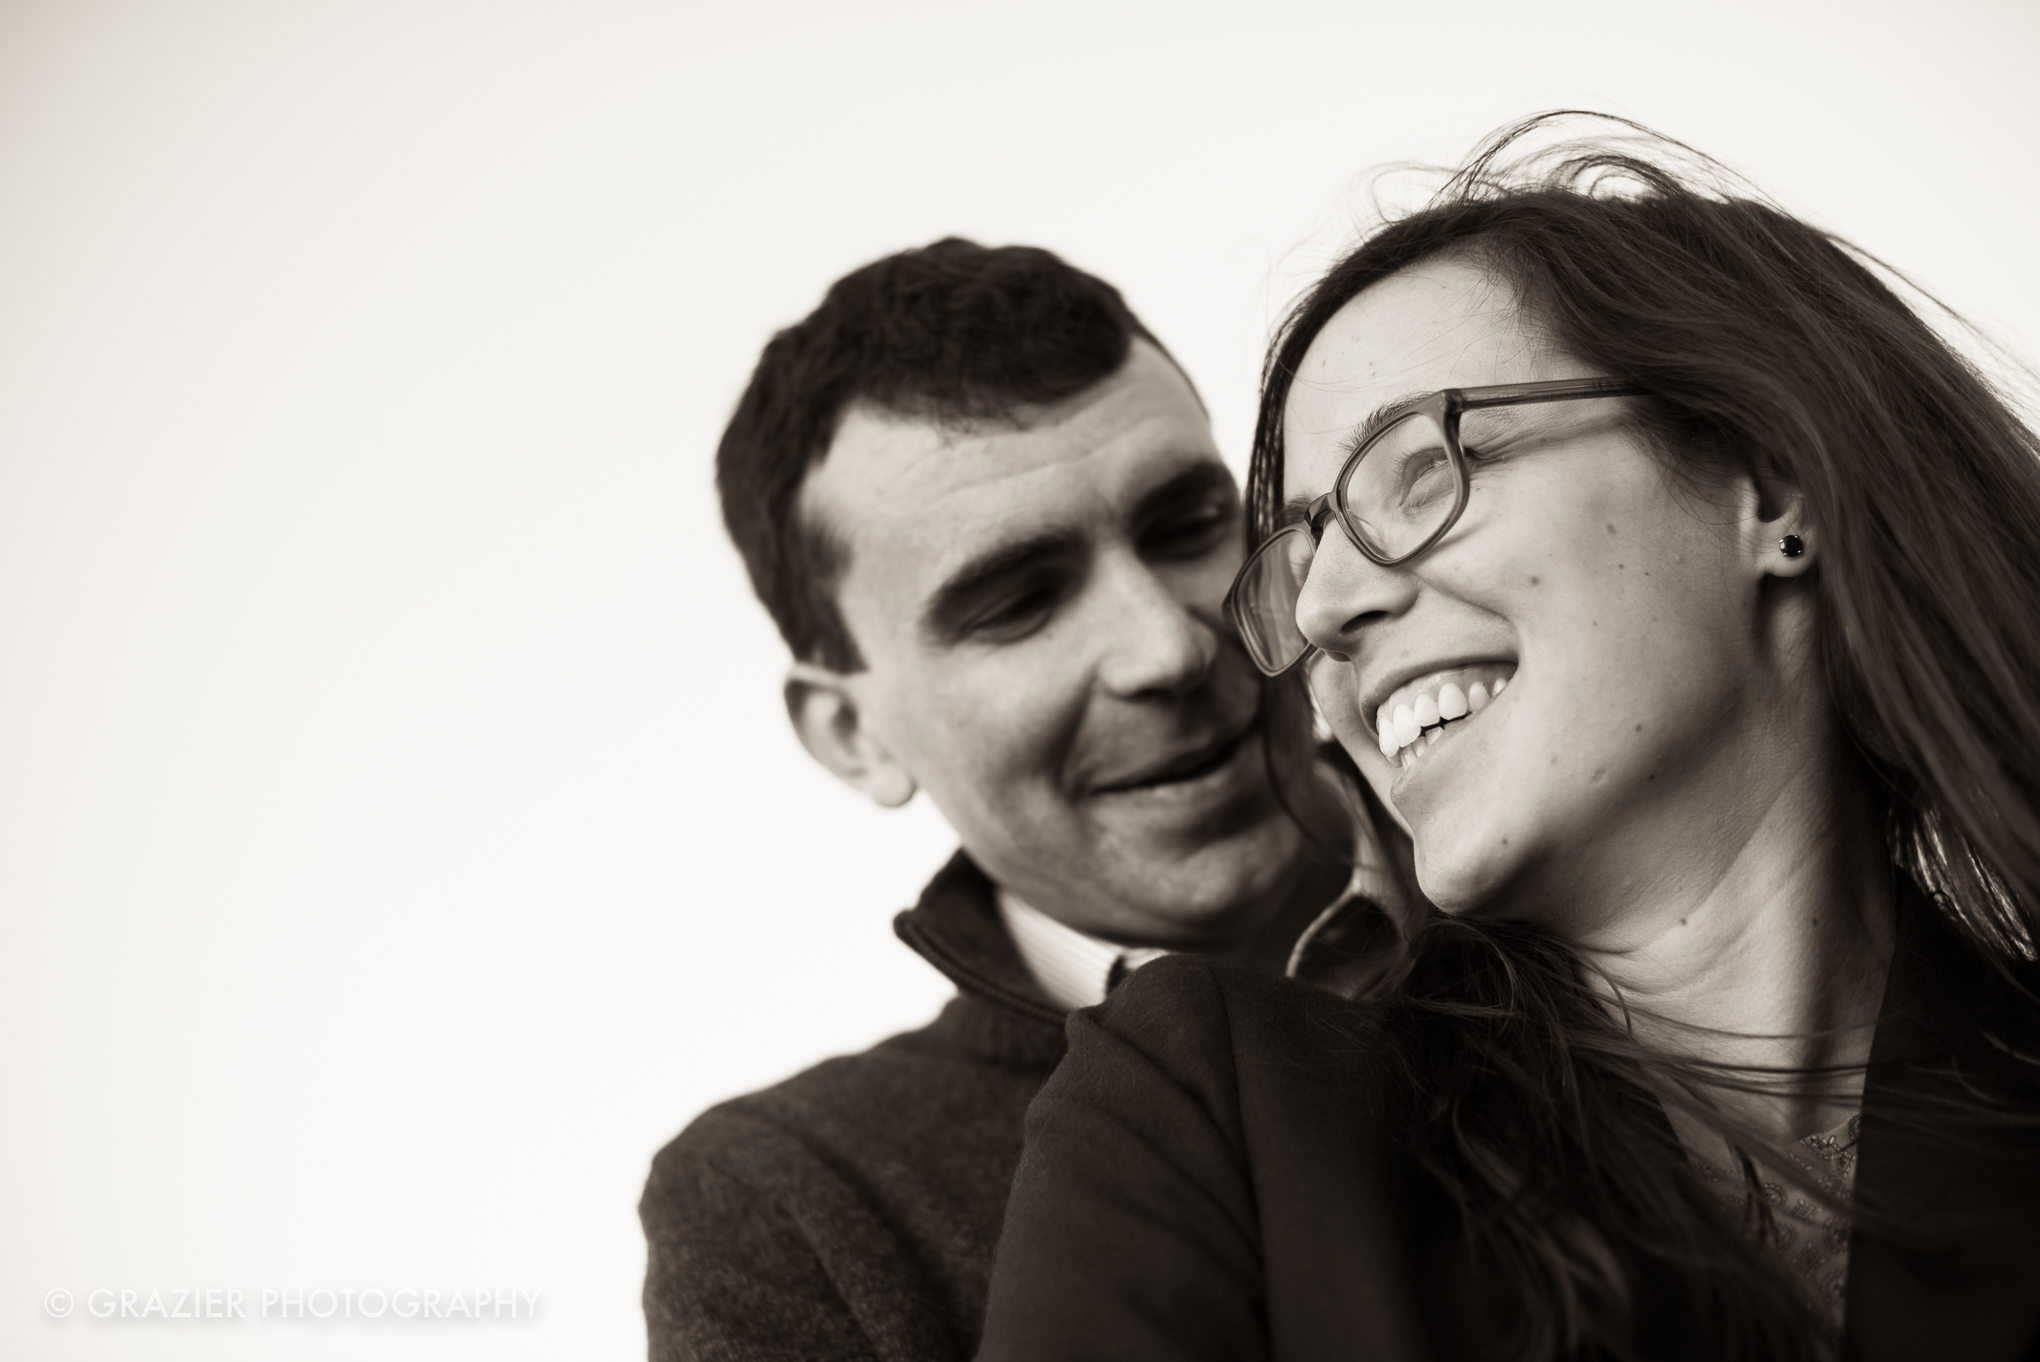 Grazier_Photography_Boston_Engagement_160430_112.jpg